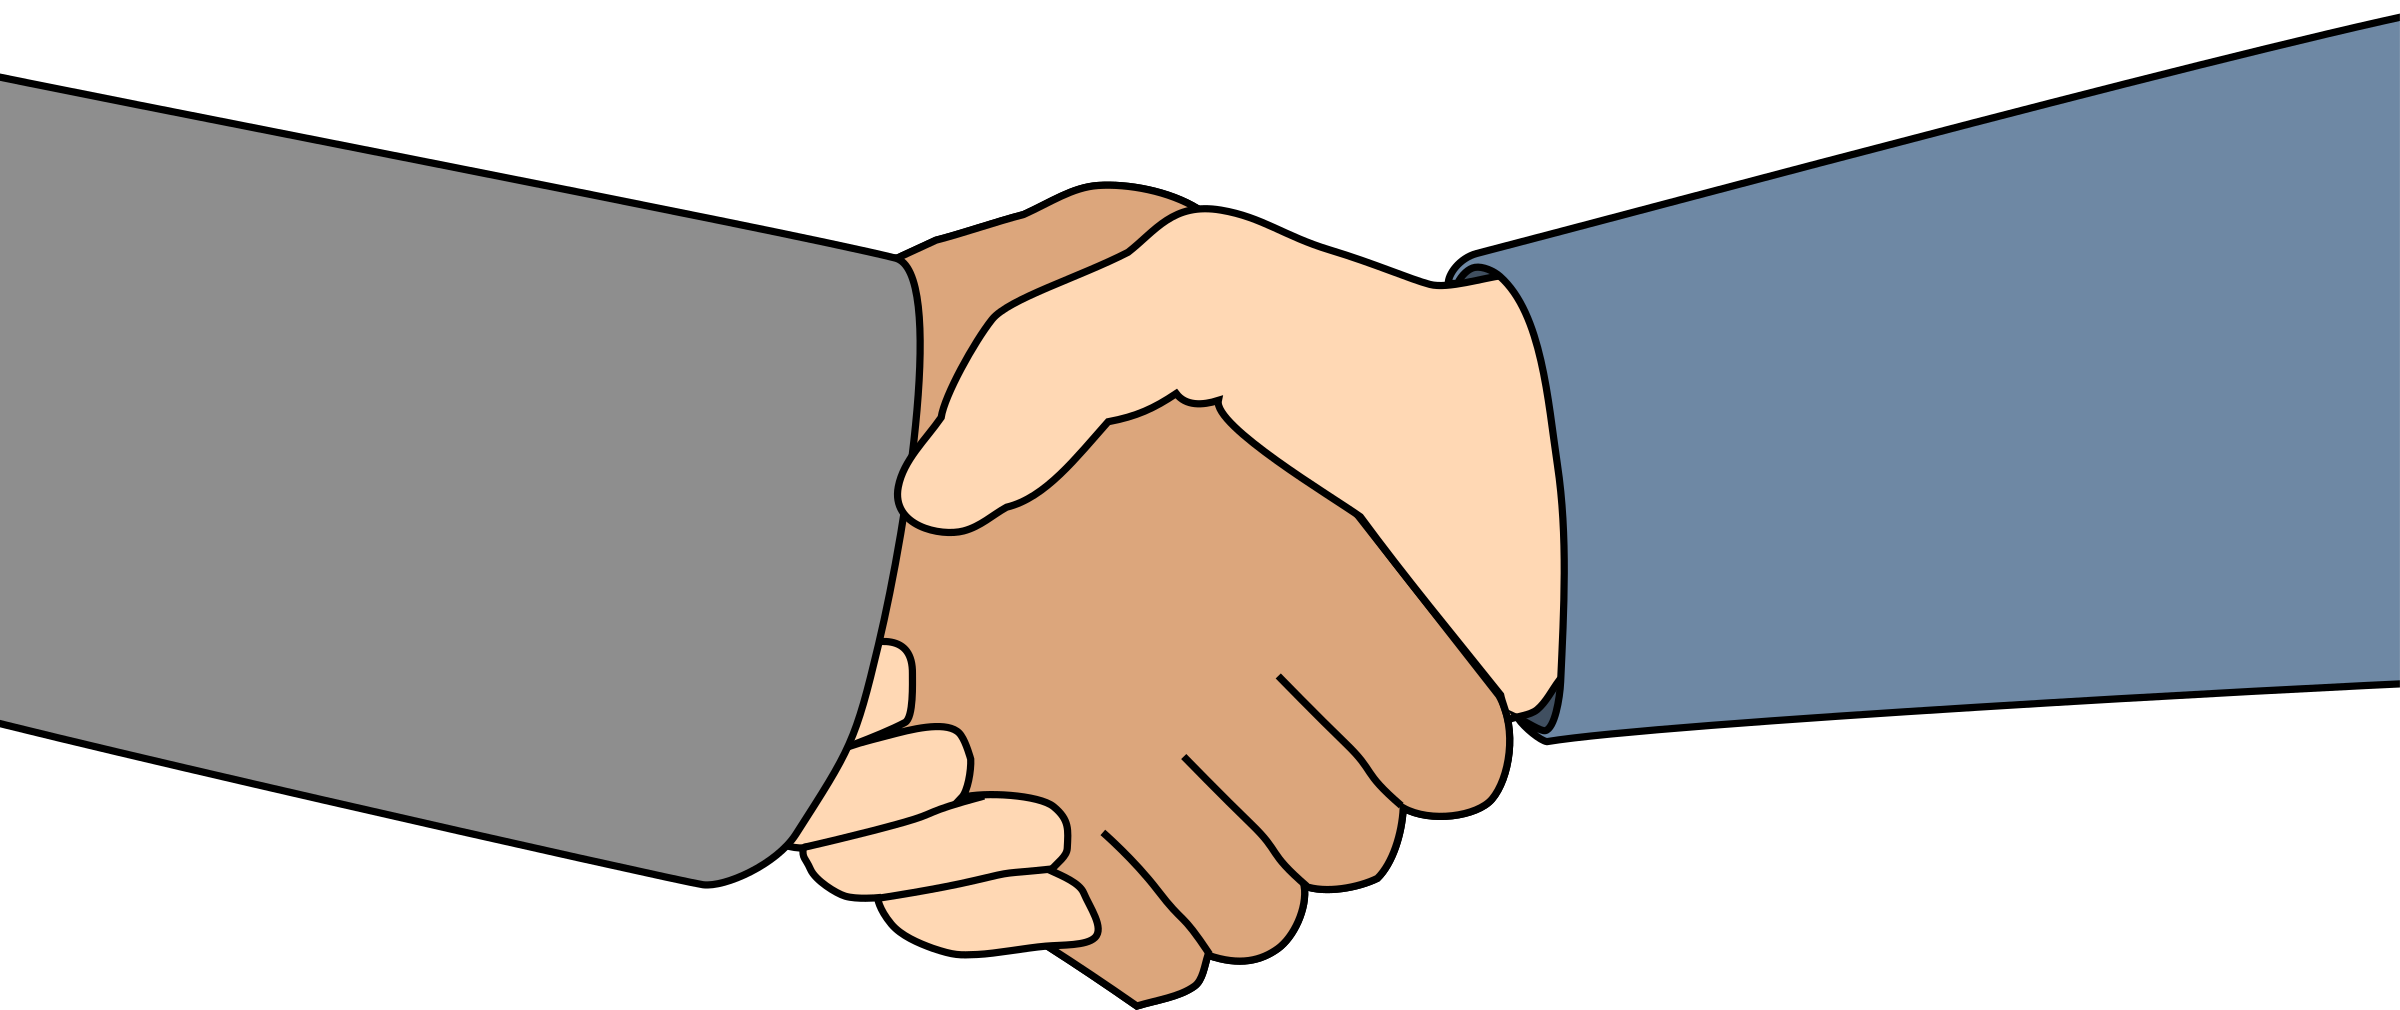 hand shake clipart   look at hand shake clip art images clipart handshake transparent handshake clipart black and white